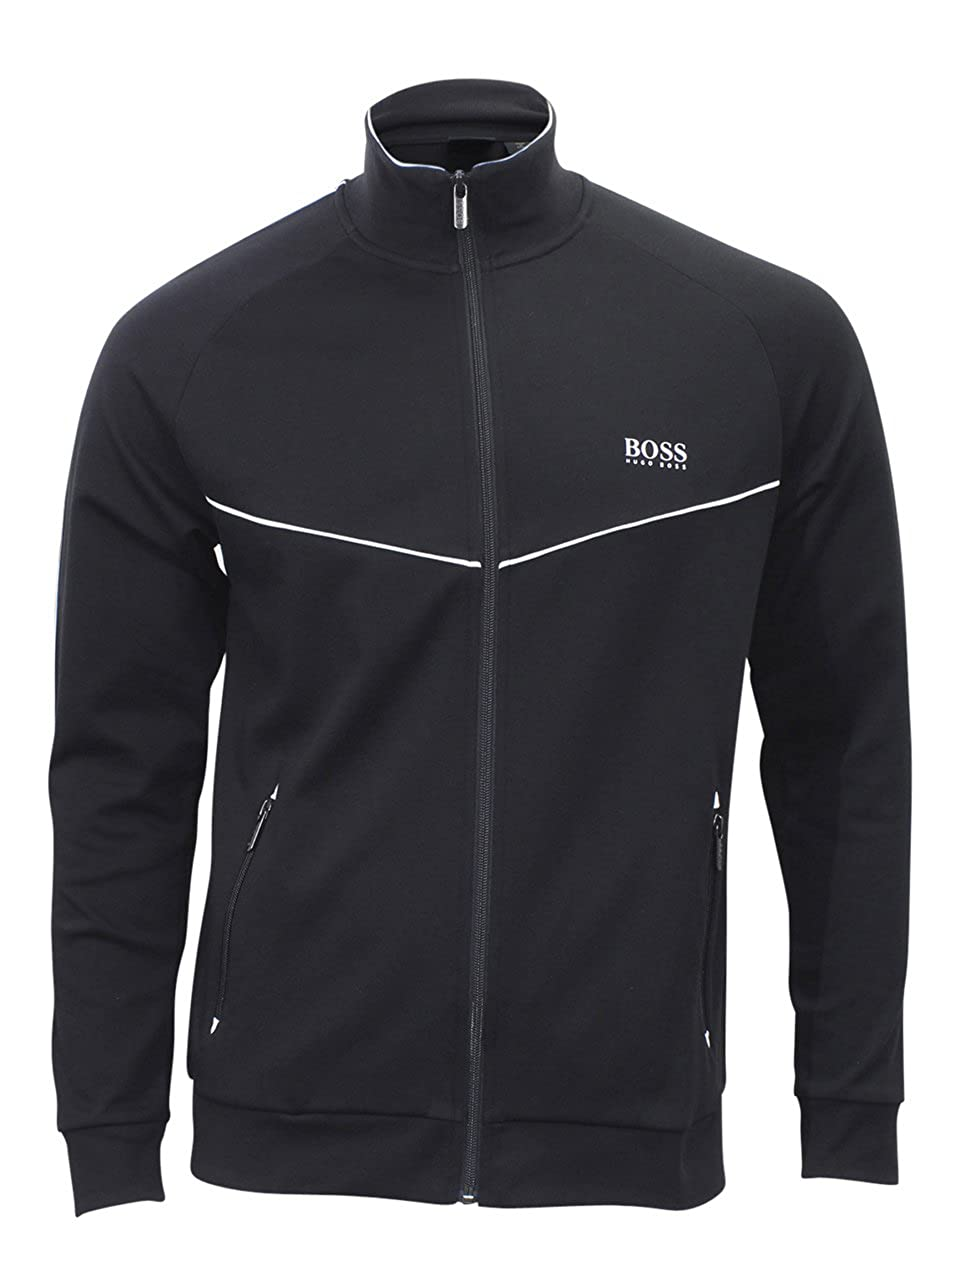 Hugo Boss Men's Tracksuit Jacket Jacket Jackets 70% Cotton 30% Polyester Brand New 50388878 001